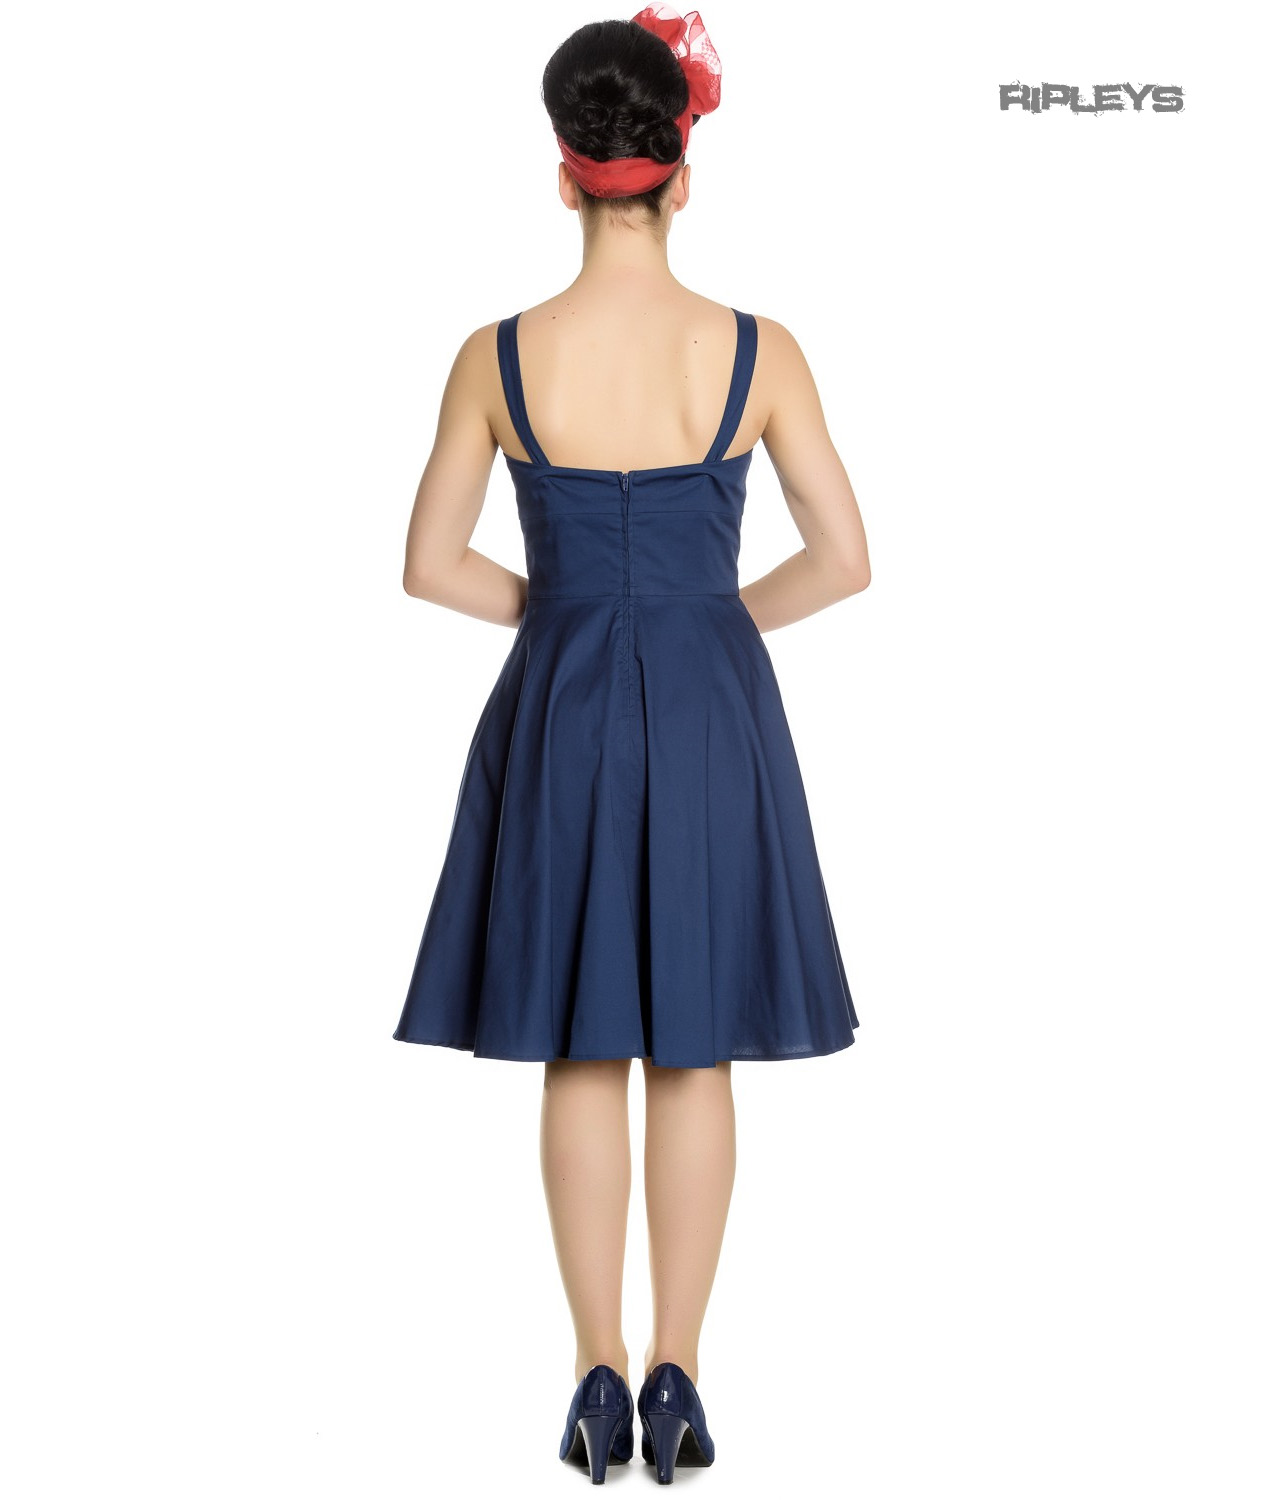 Hell-Bunny-Vintage-50s-Pin-Up-Dress-Navy-Blue-SELA-Nautical-Anchors-All-Sizes thumbnail 8